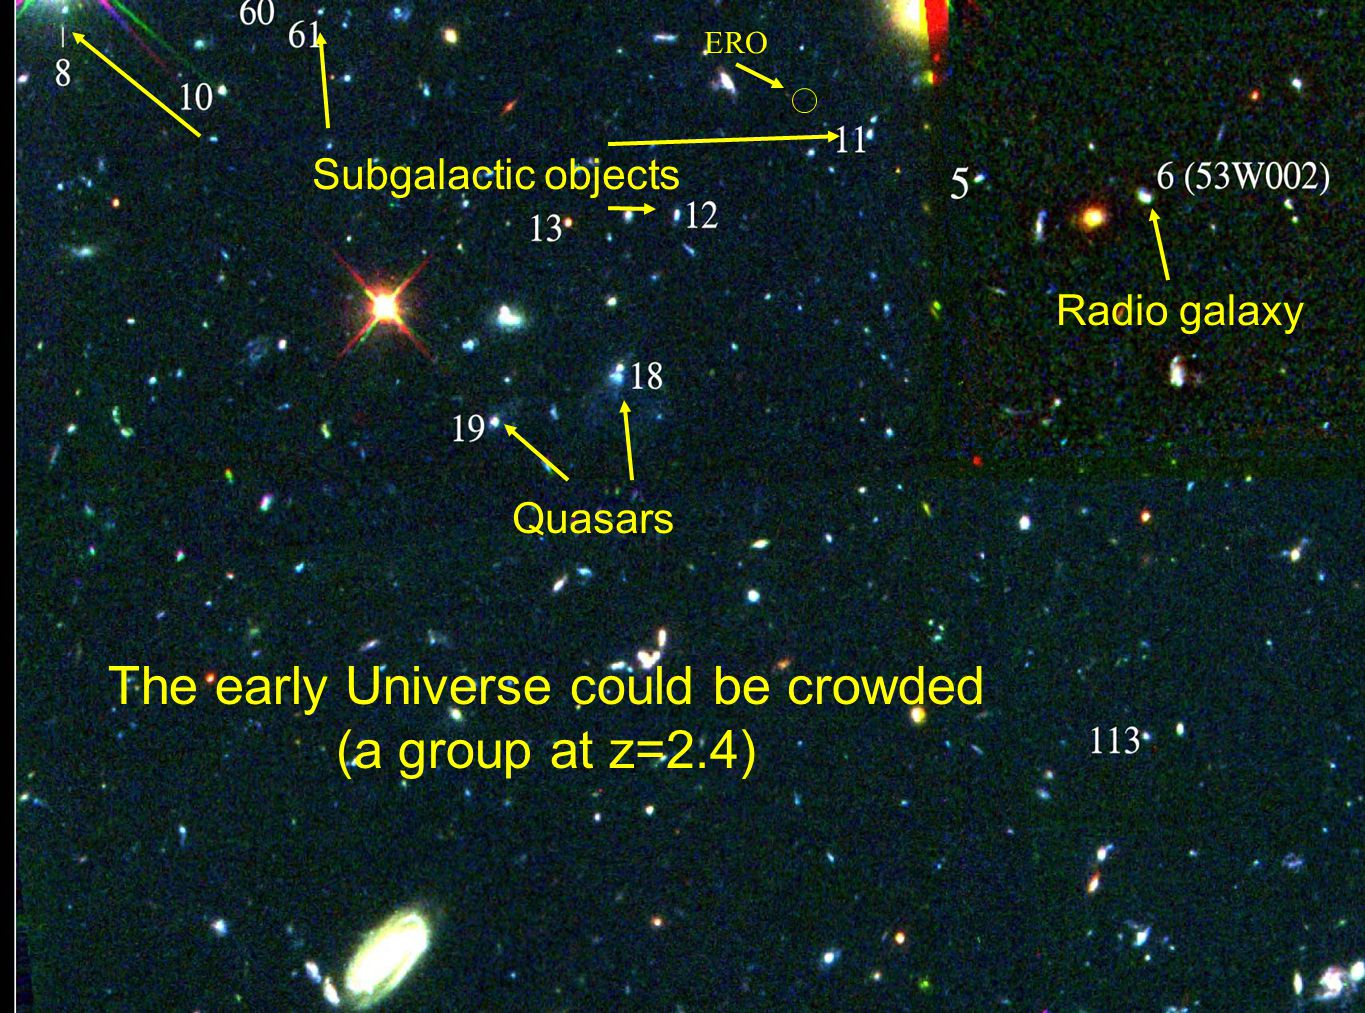 The early Universe could be crowded (a group at z=2.4) Subgalactic objects Quasars Radio galaxy ERO